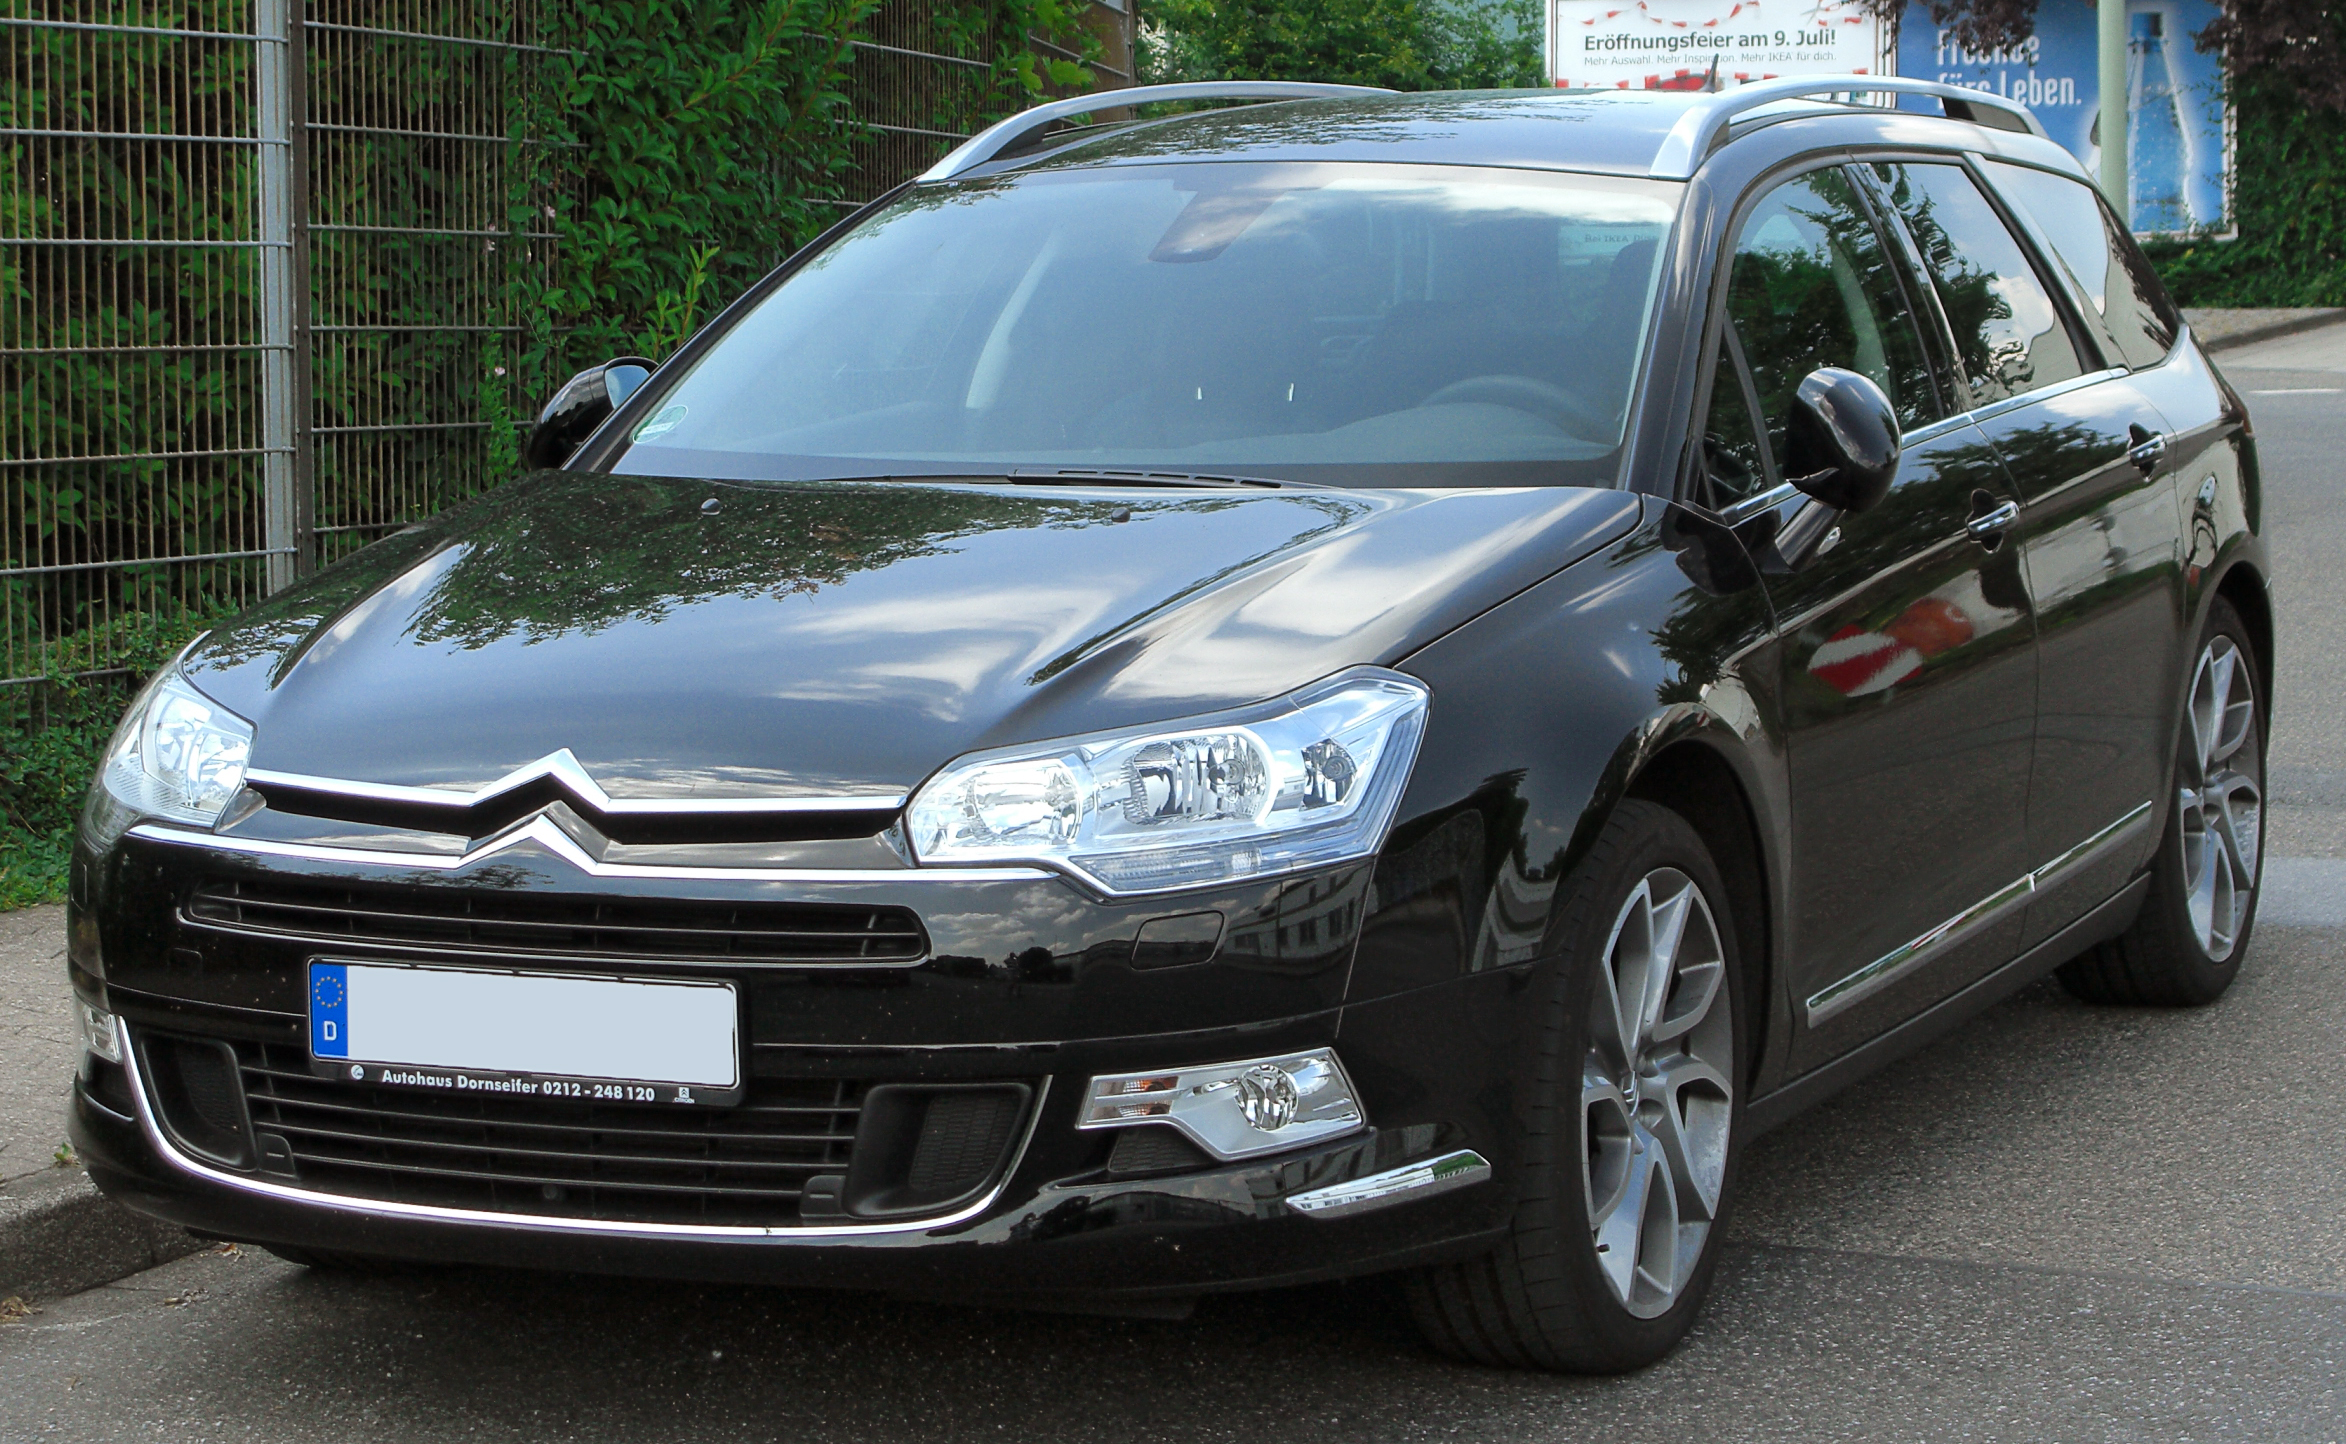 citroen c5 estate dimensions. Black Bedroom Furniture Sets. Home Design Ideas